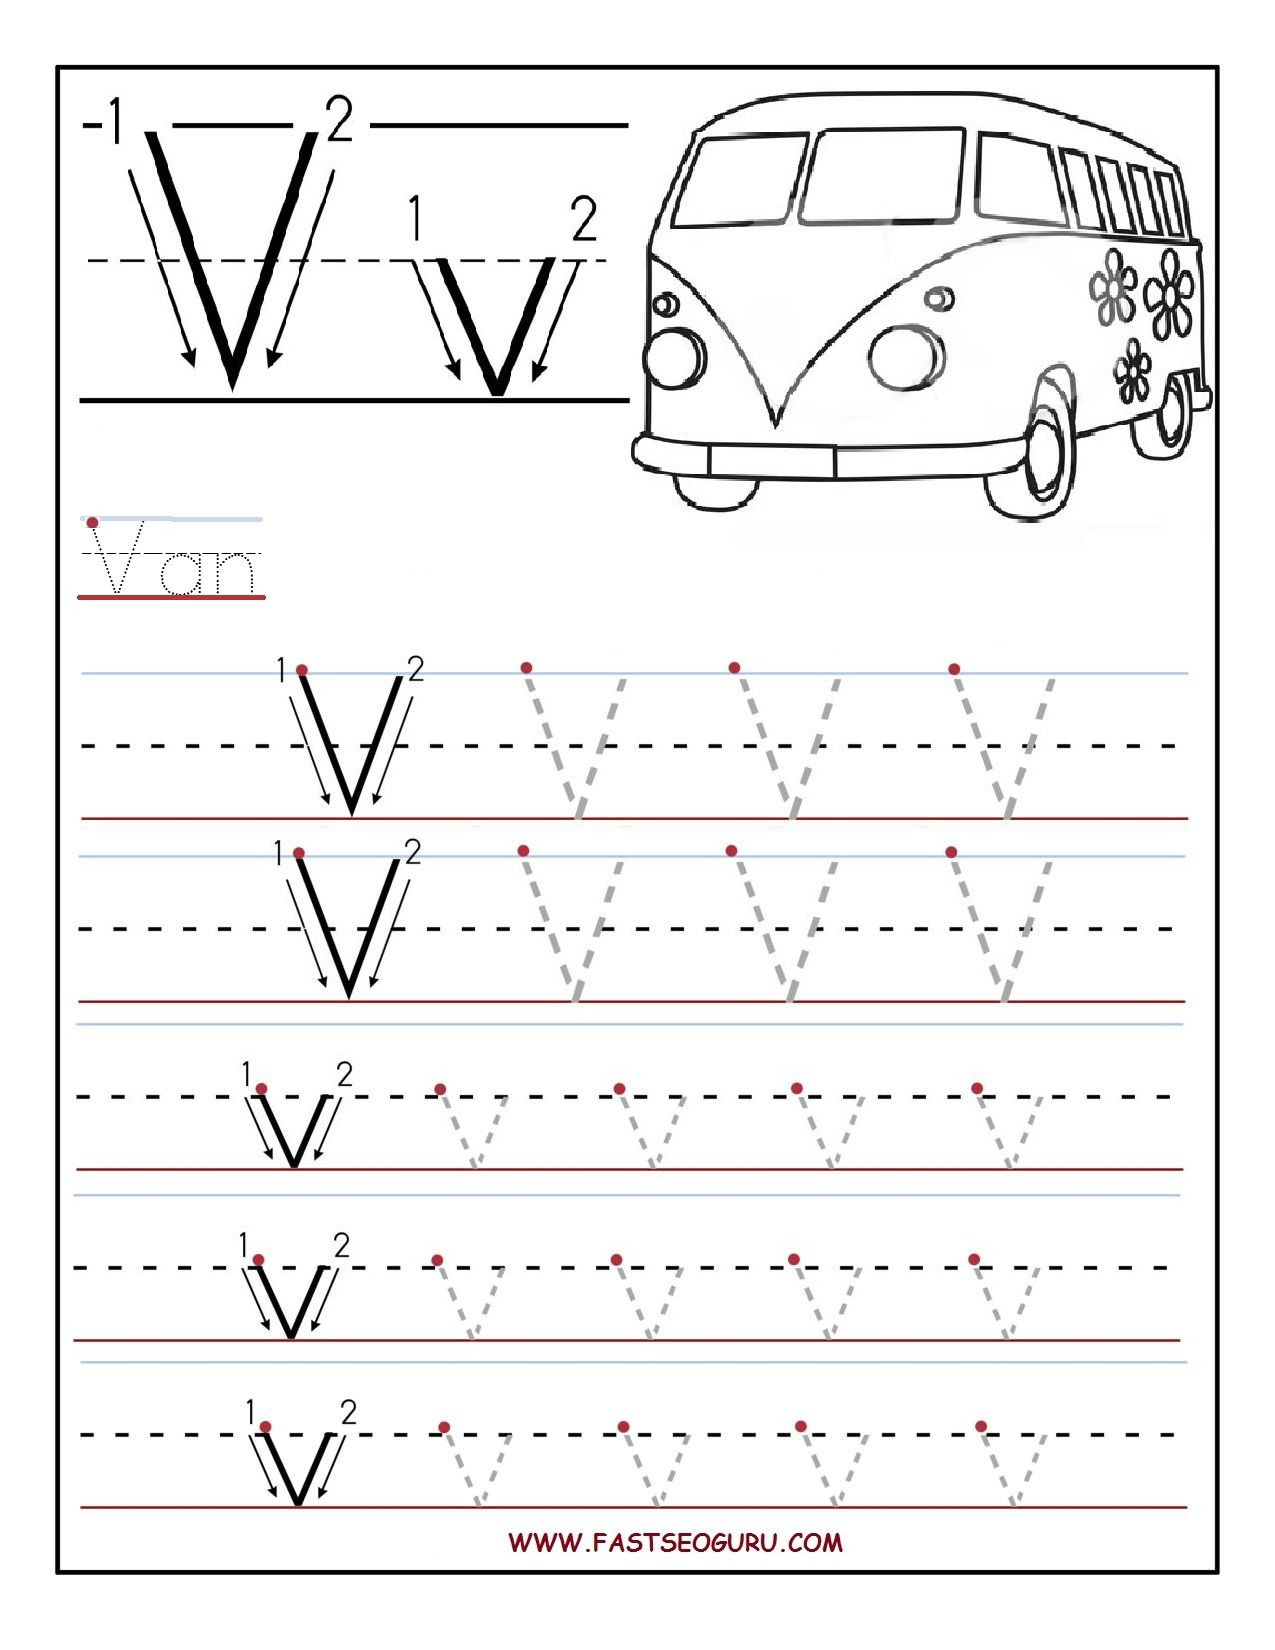 Worksheets Pre K Alphabet Tracing Worksheets printable letter v tracing worksheets for preschool pre k work preschool